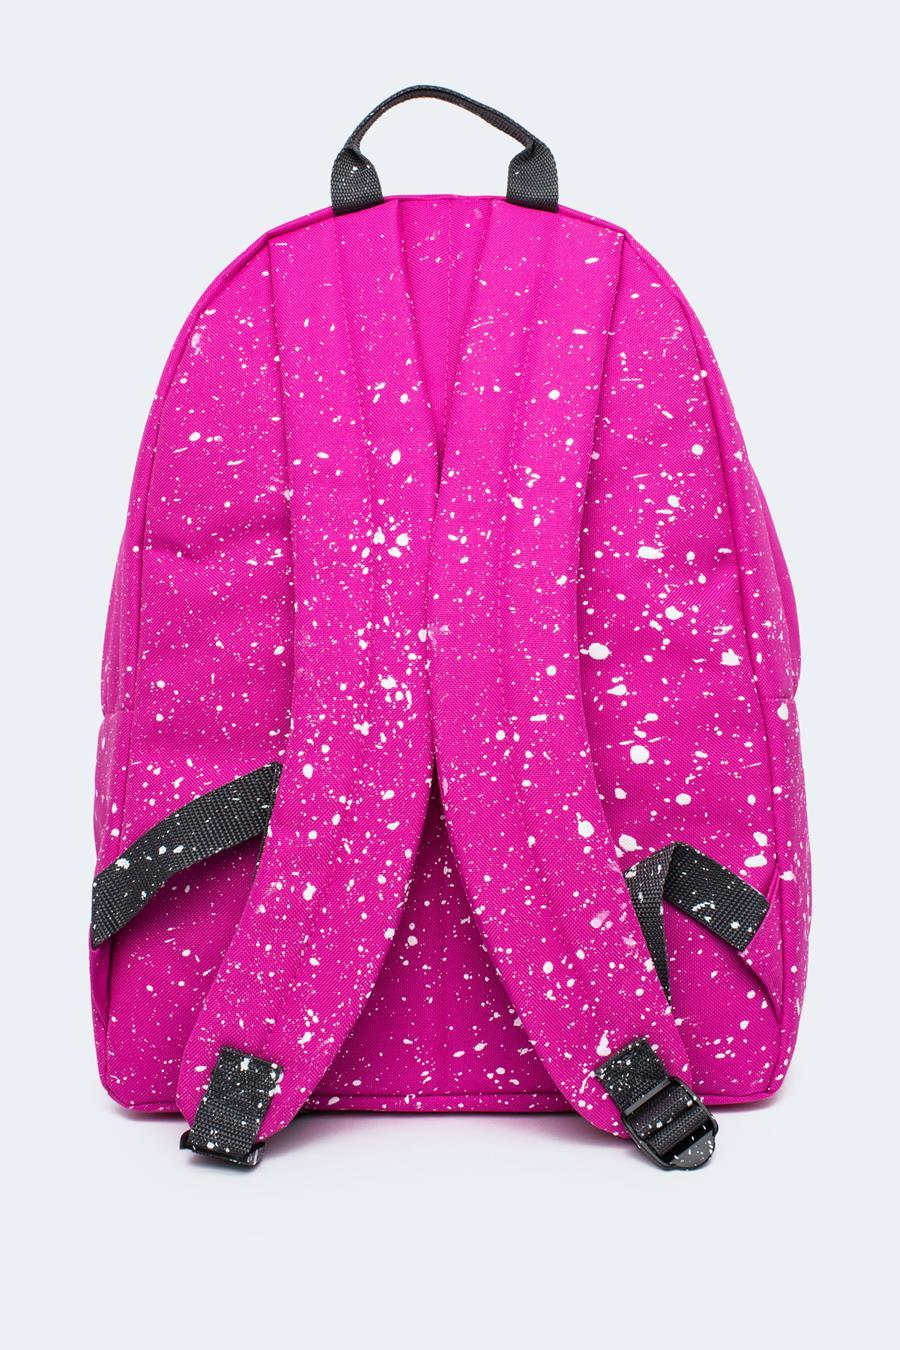 ca591fe17173 HYPE PINK WITH WHITE SPECKLE BACKPACK – JustHype ltd